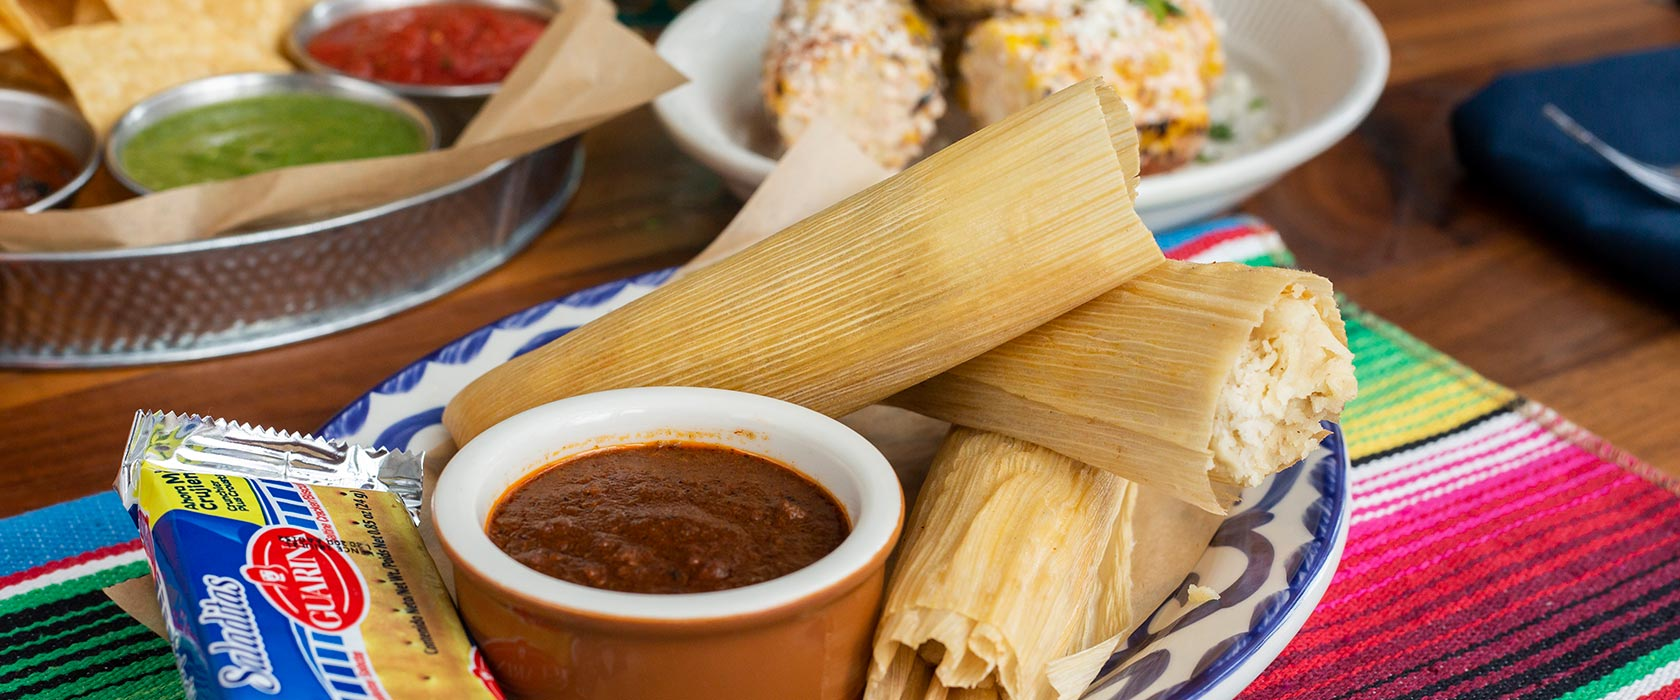 Plated hot tamales on colorful table